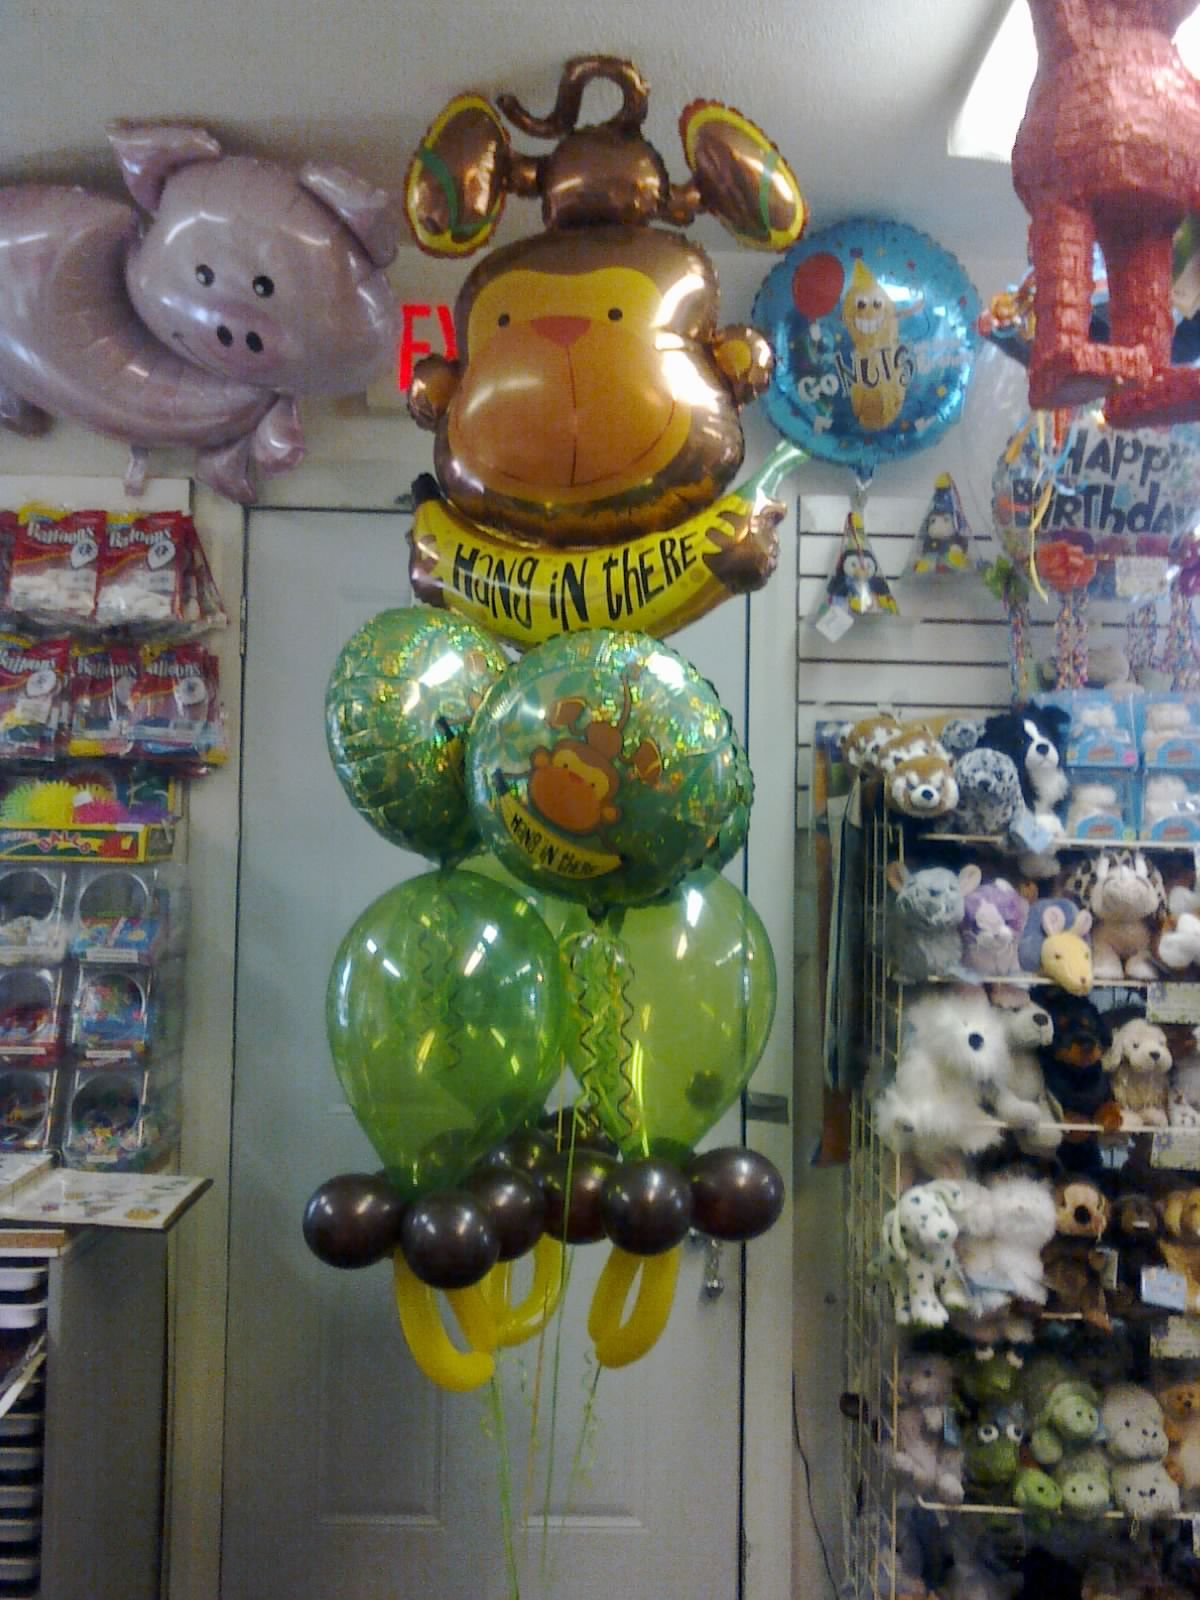 Pin by Balloonee Toonz on Our Balloon Bouquets Balloon